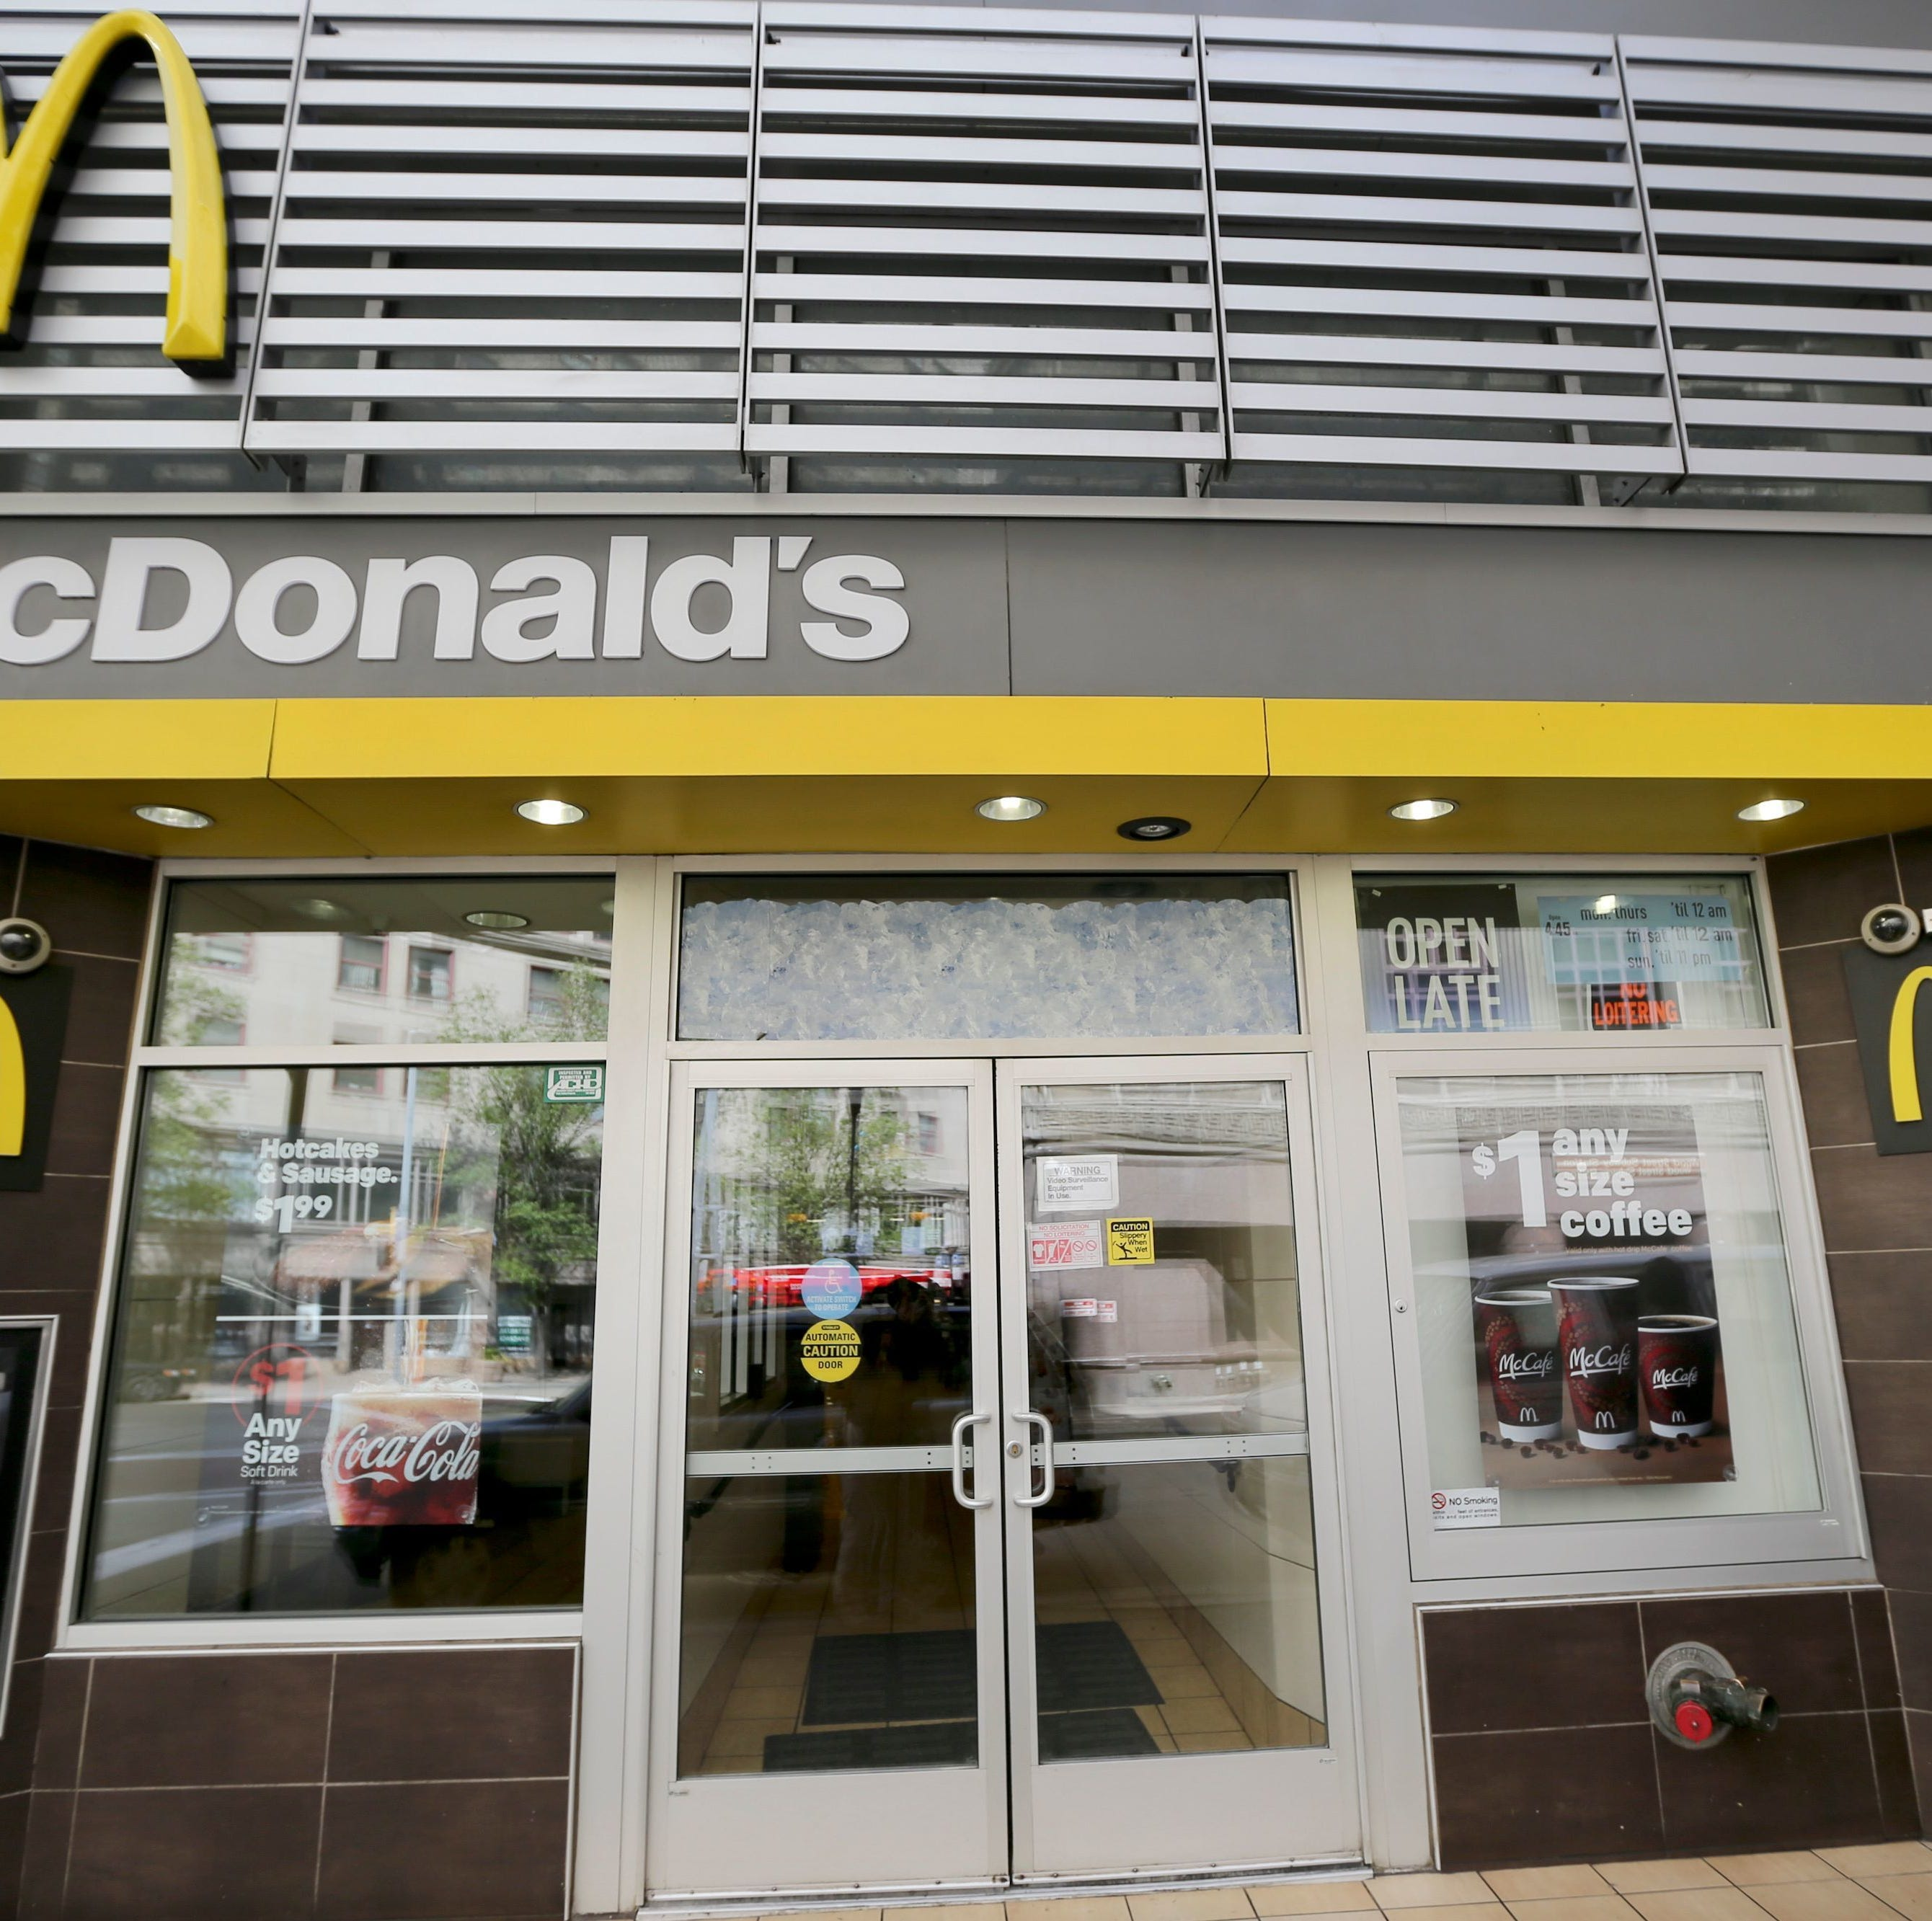 Arizona mother, daughter file sexual harassment complaints against their employer, McDonald's